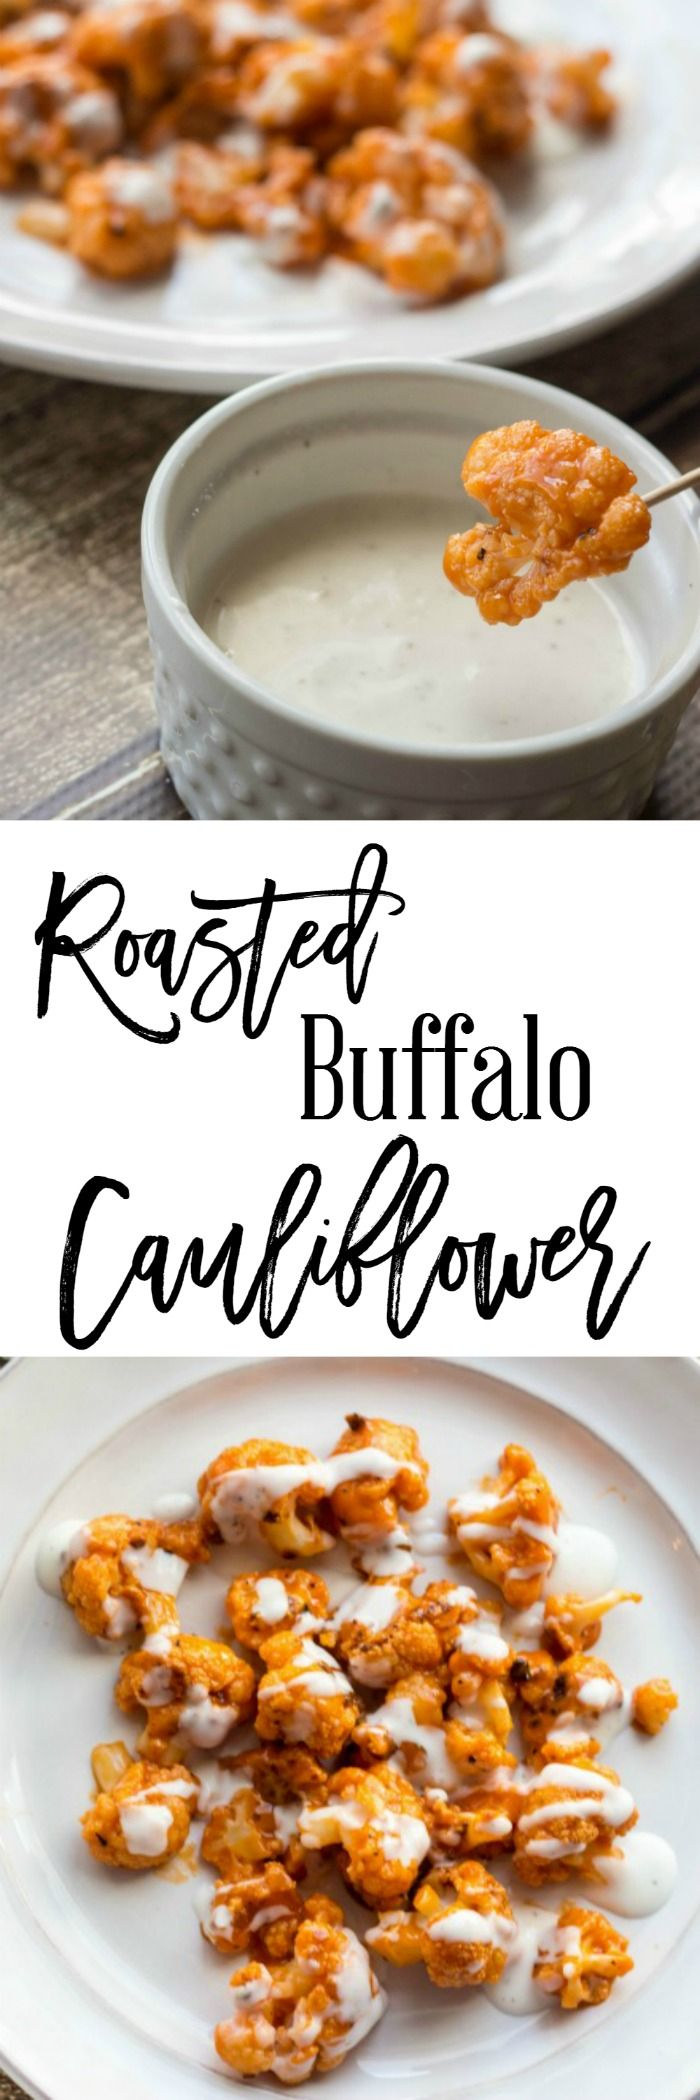 Roasted Buffalo Cauliflower - a delicious appetizer recipe for tailgates or get togethers.